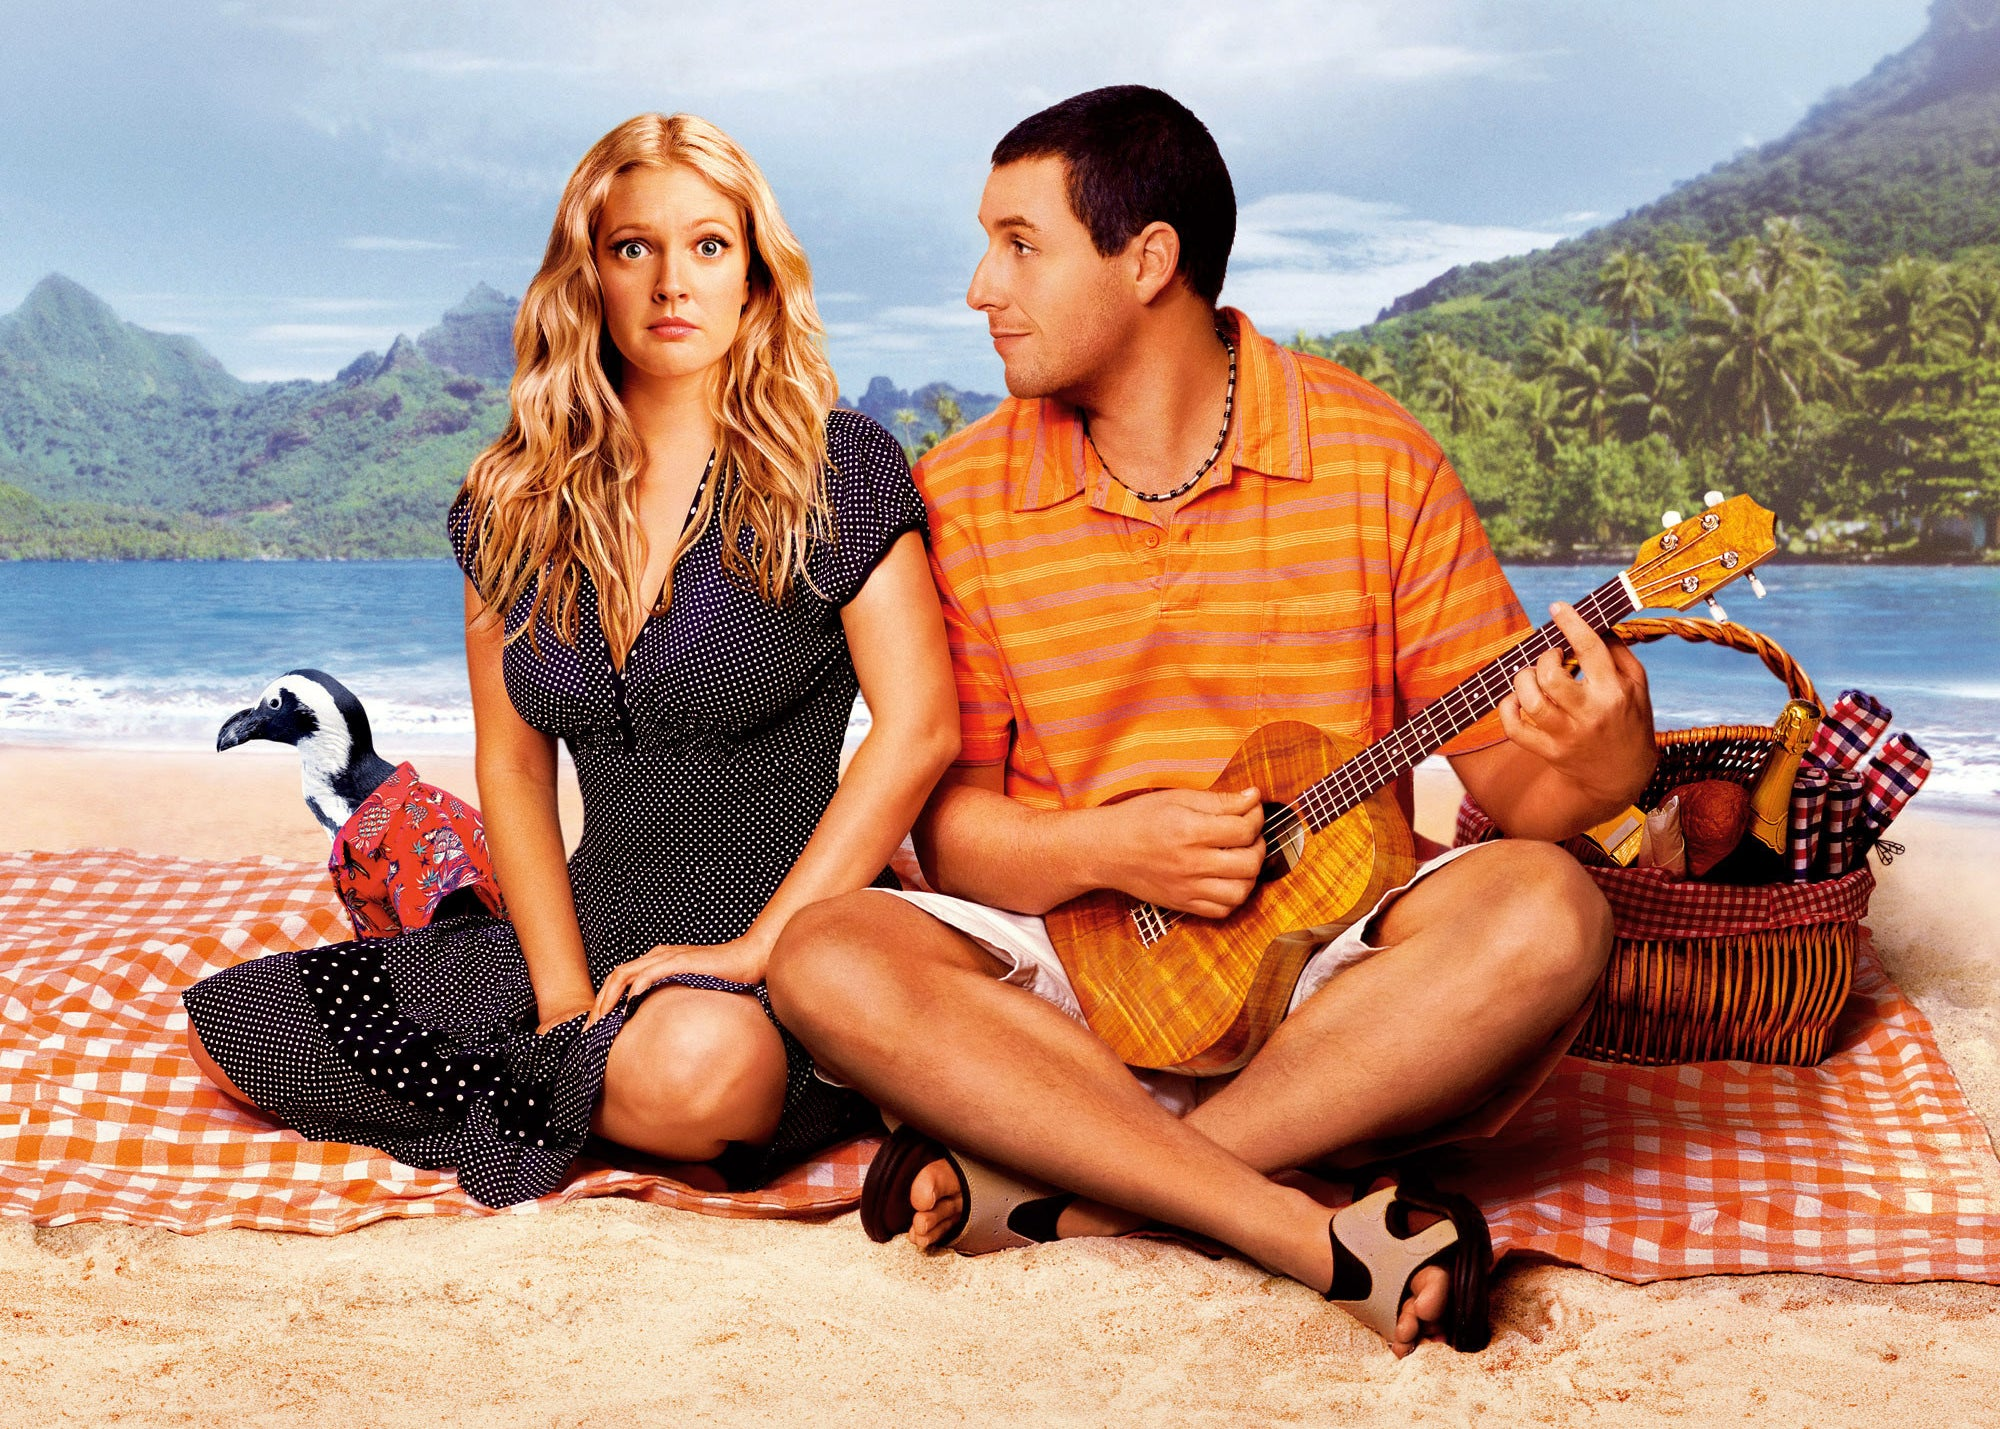 Drew Barrymore and Adam Sandler sit on a blanket on the sand on a beach